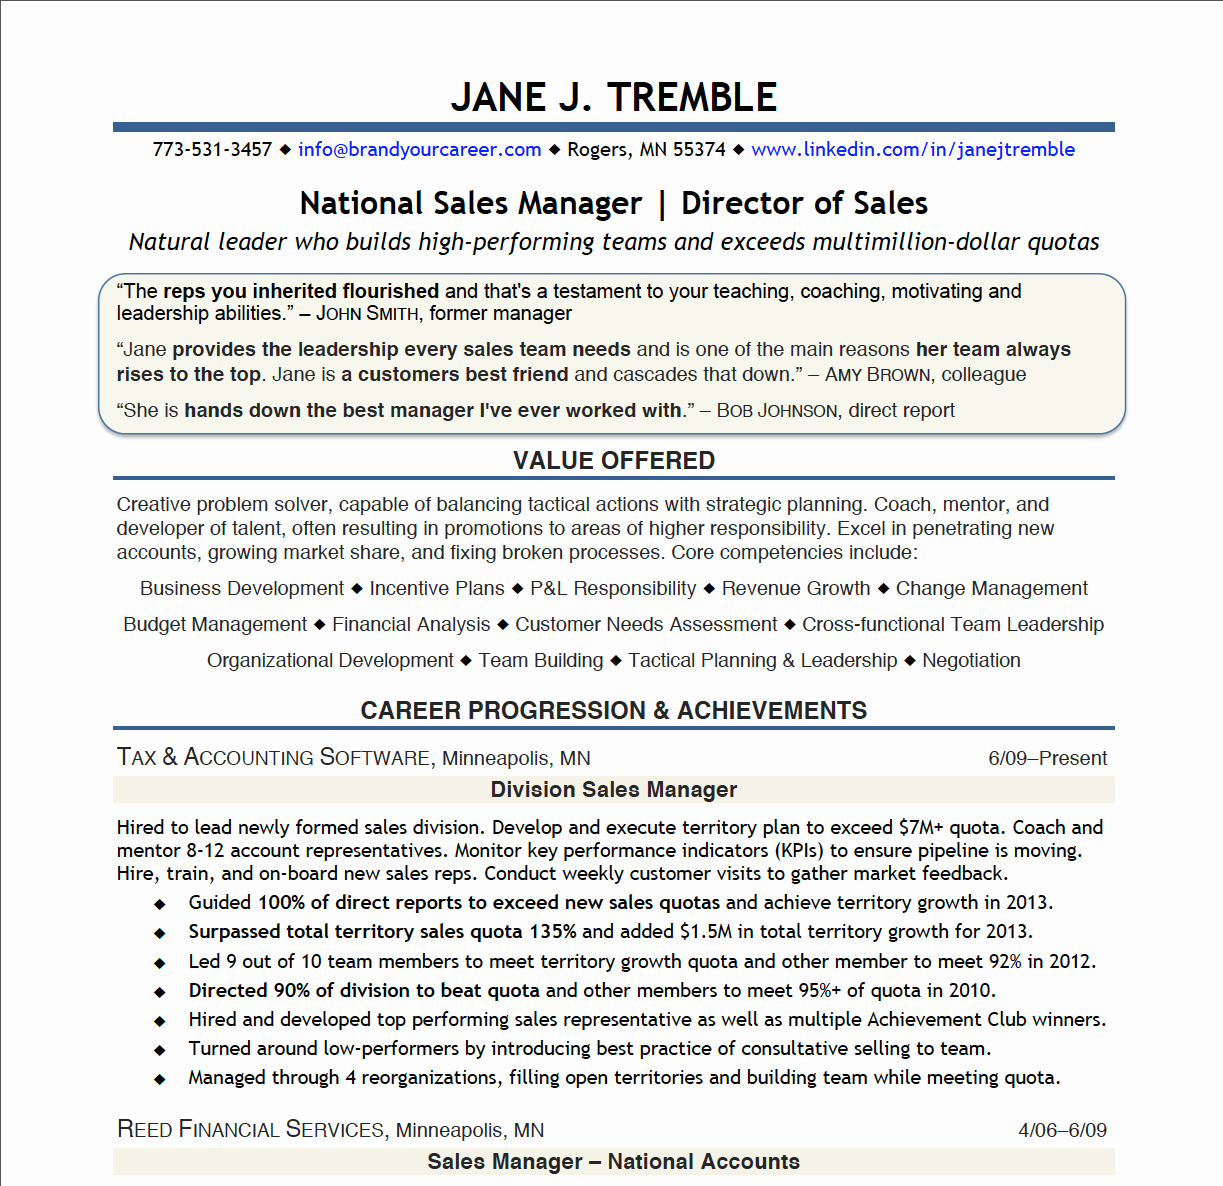 Samples Director Of Sales Brand Your Career